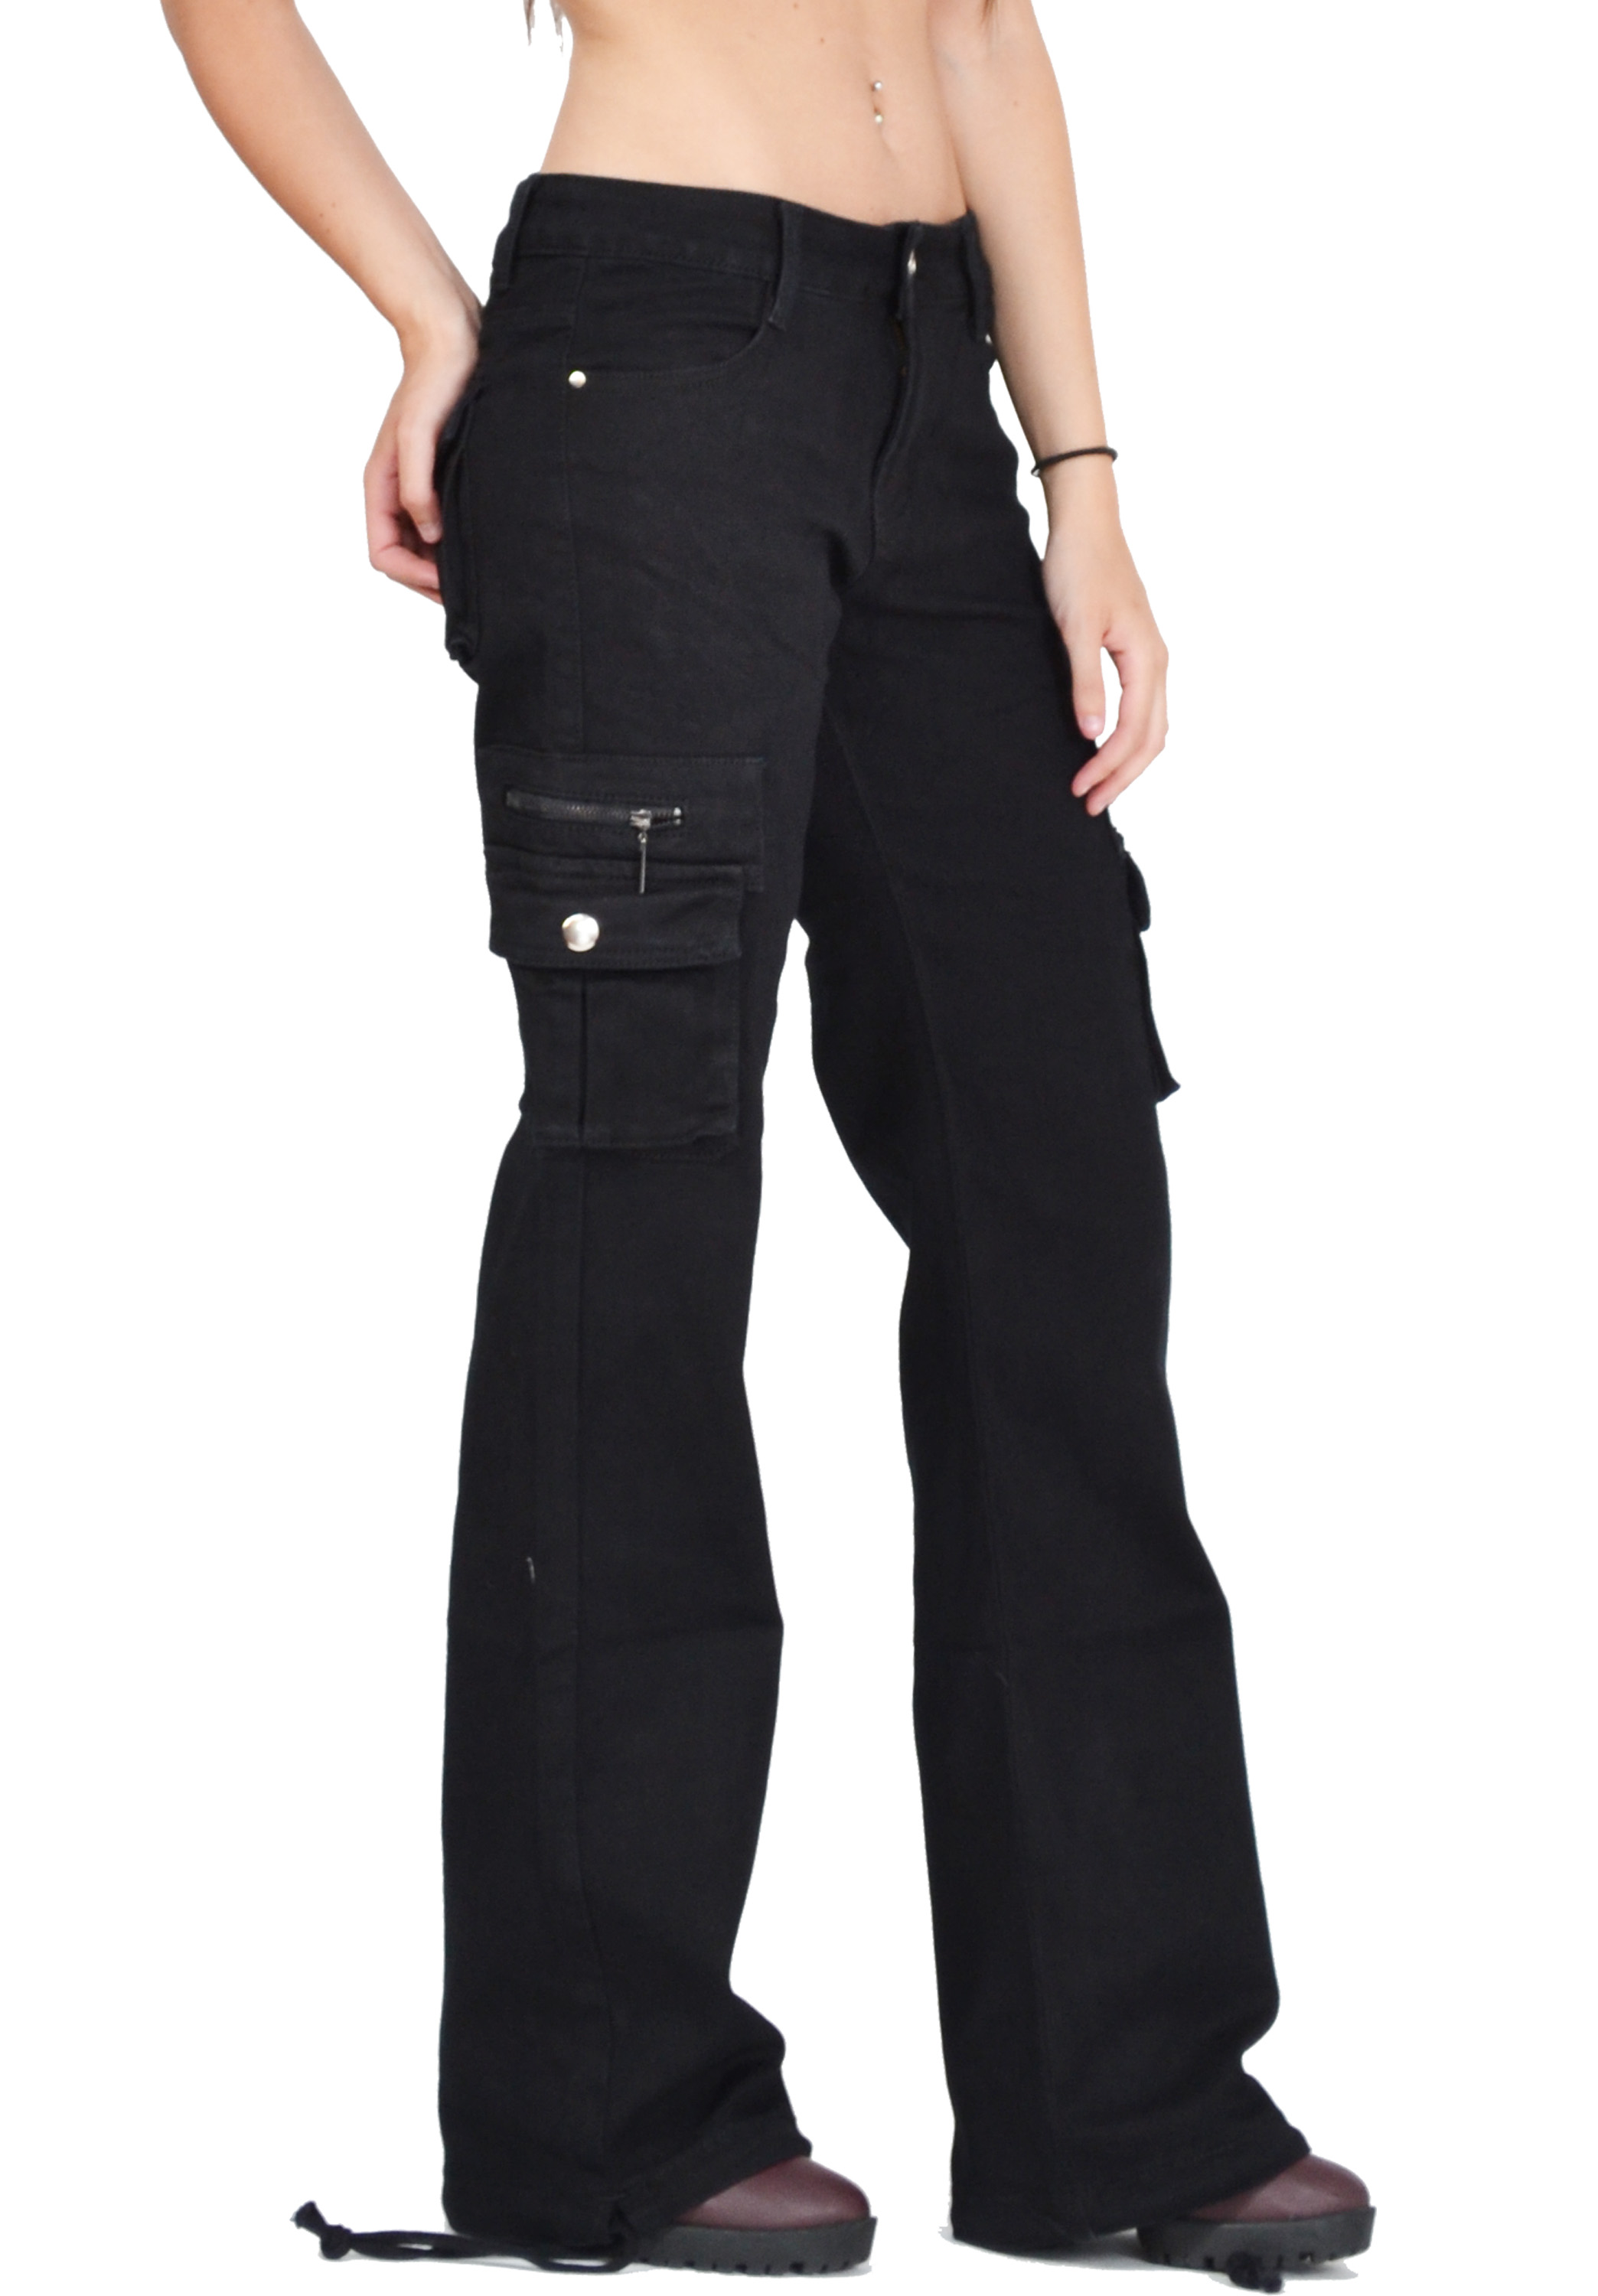 Simple If You Plan To Pack Light And Travel Carryon Only, Its Essential To Bring A Few Pairs Of Pants That Can Do It All For Women, Here Are My Absolute Most Comfortable Travel Pants The Cassi  I Was Reminded Of Cargo Pants When I First Saw It